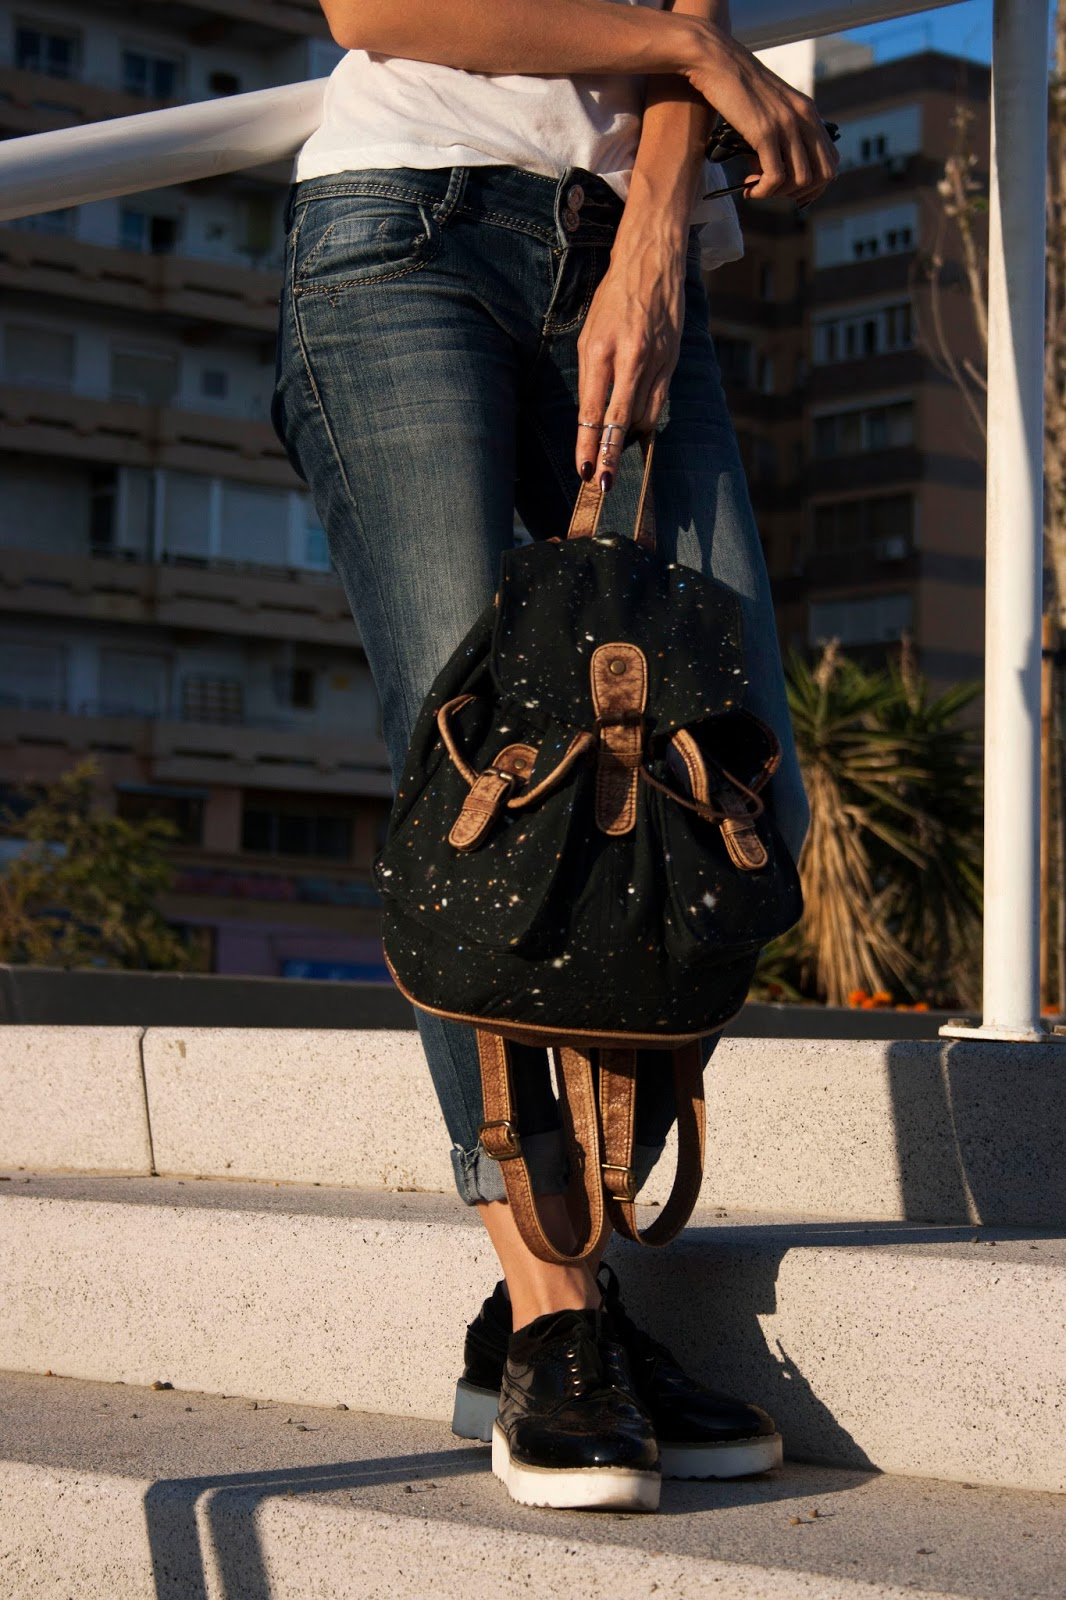 galaxia-backpack-grunge-lorraine-blackbird-mochila